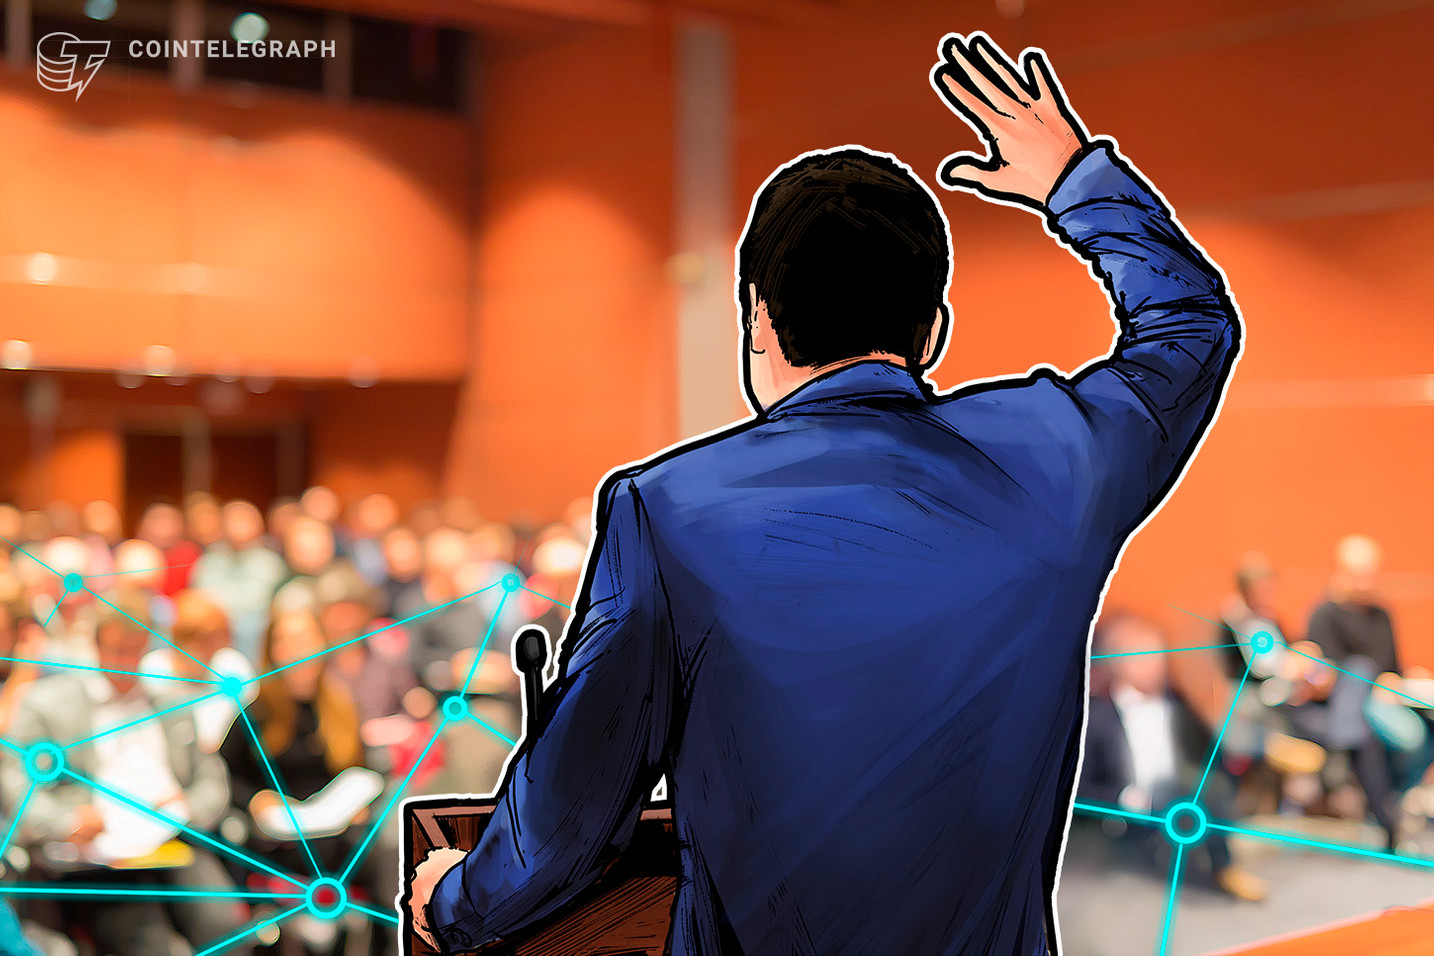 Don't 'Disadvantage' Emerging Tech Like Blockchain, Says U.S. Telecoms Authority Chairman